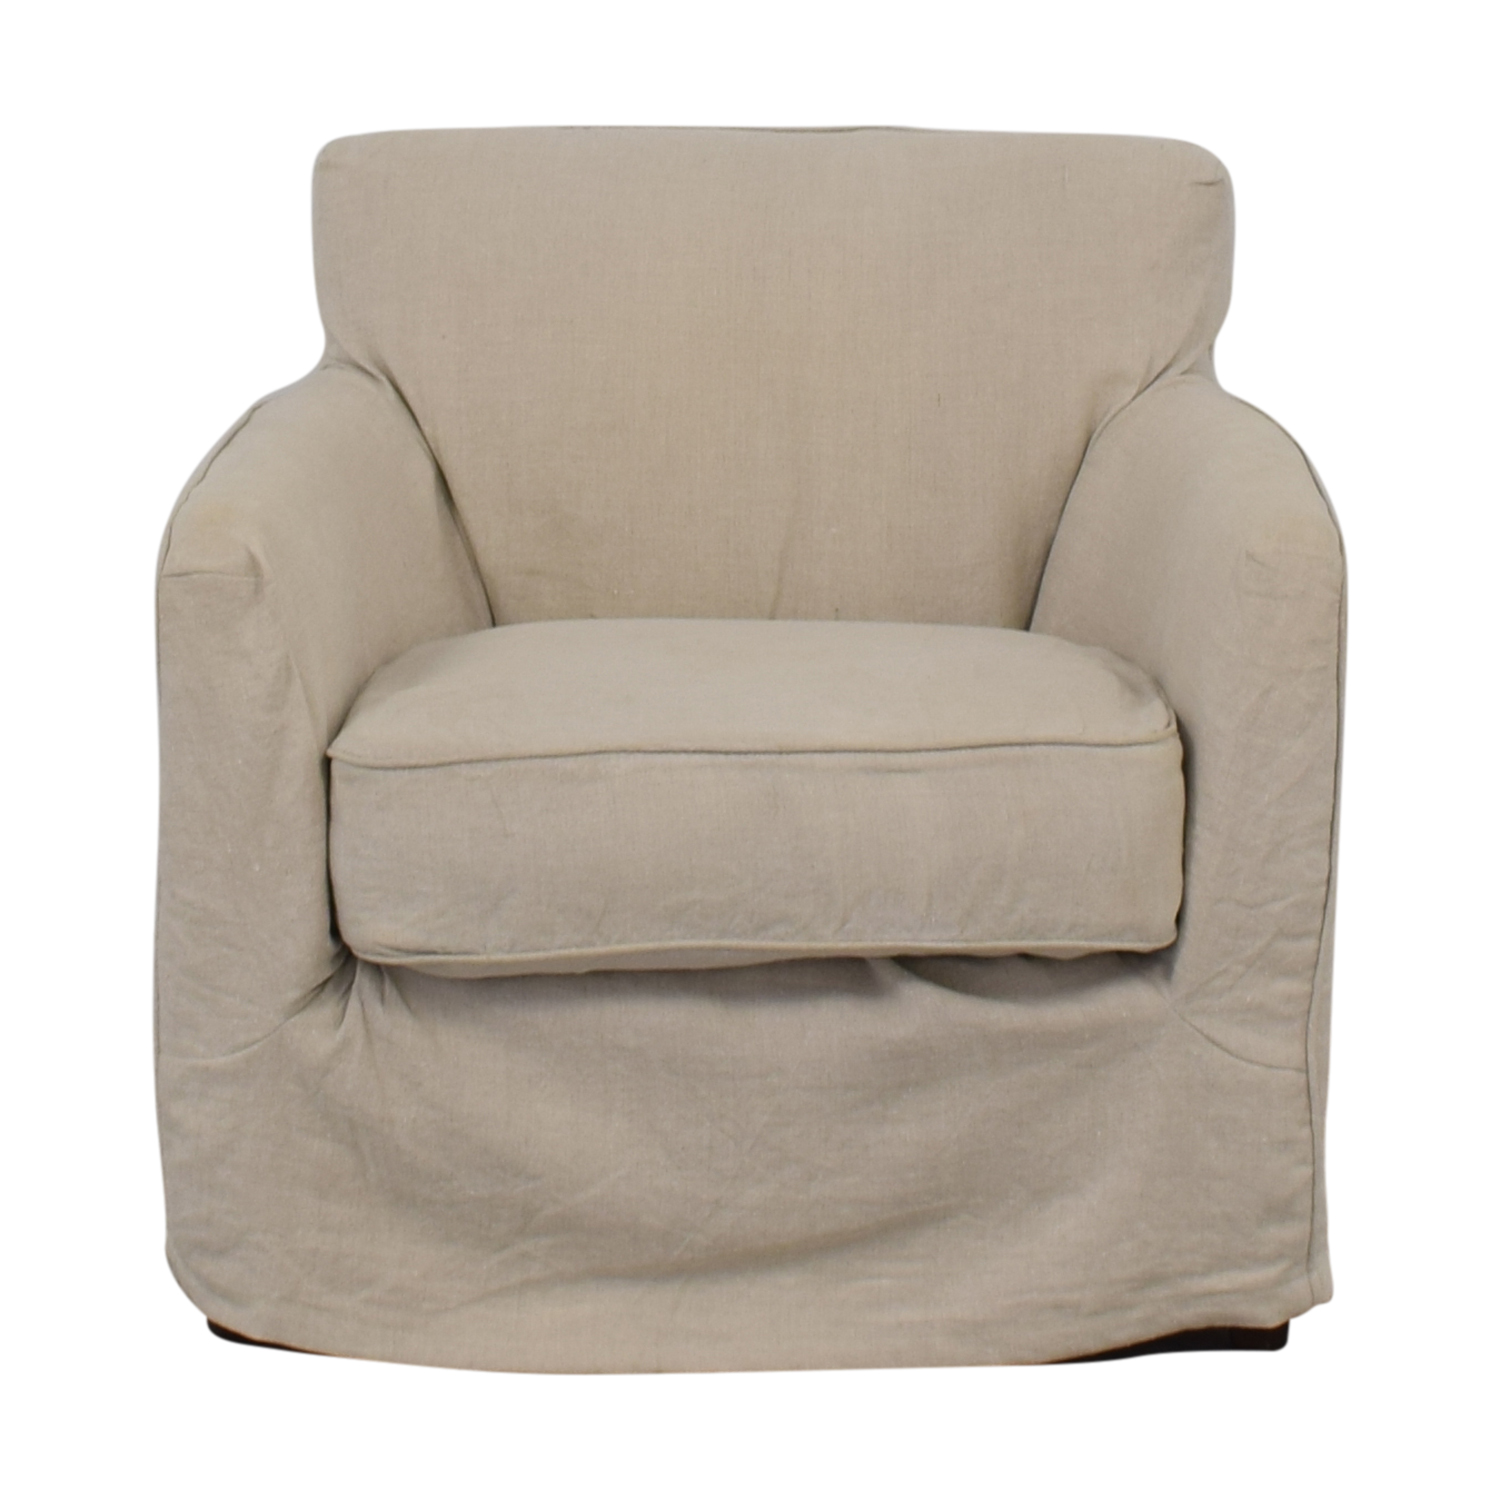 Crate & Barrel Crate & Barrel Linen Slipcovered Armchair price